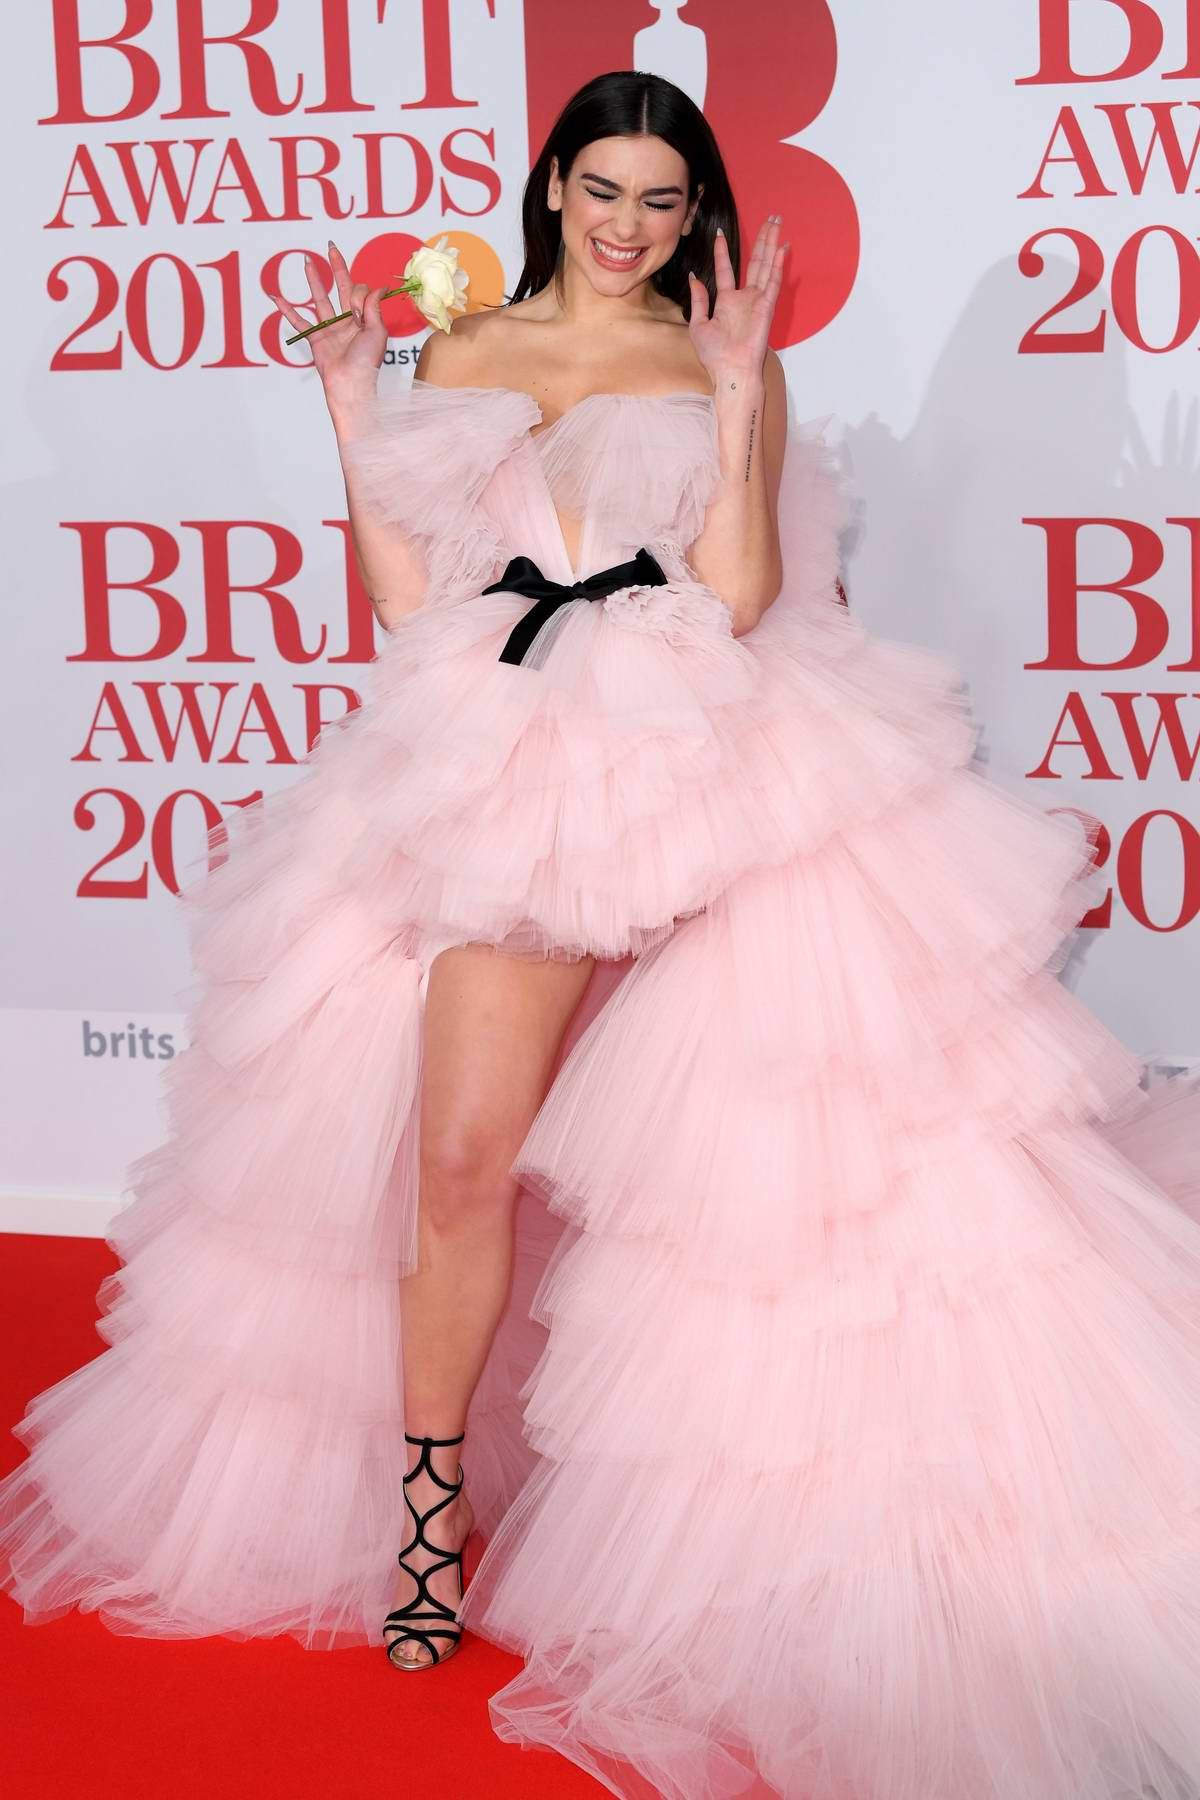 Dua Lipa attends the 38th Brit Awards, held at the O2 Arena in London